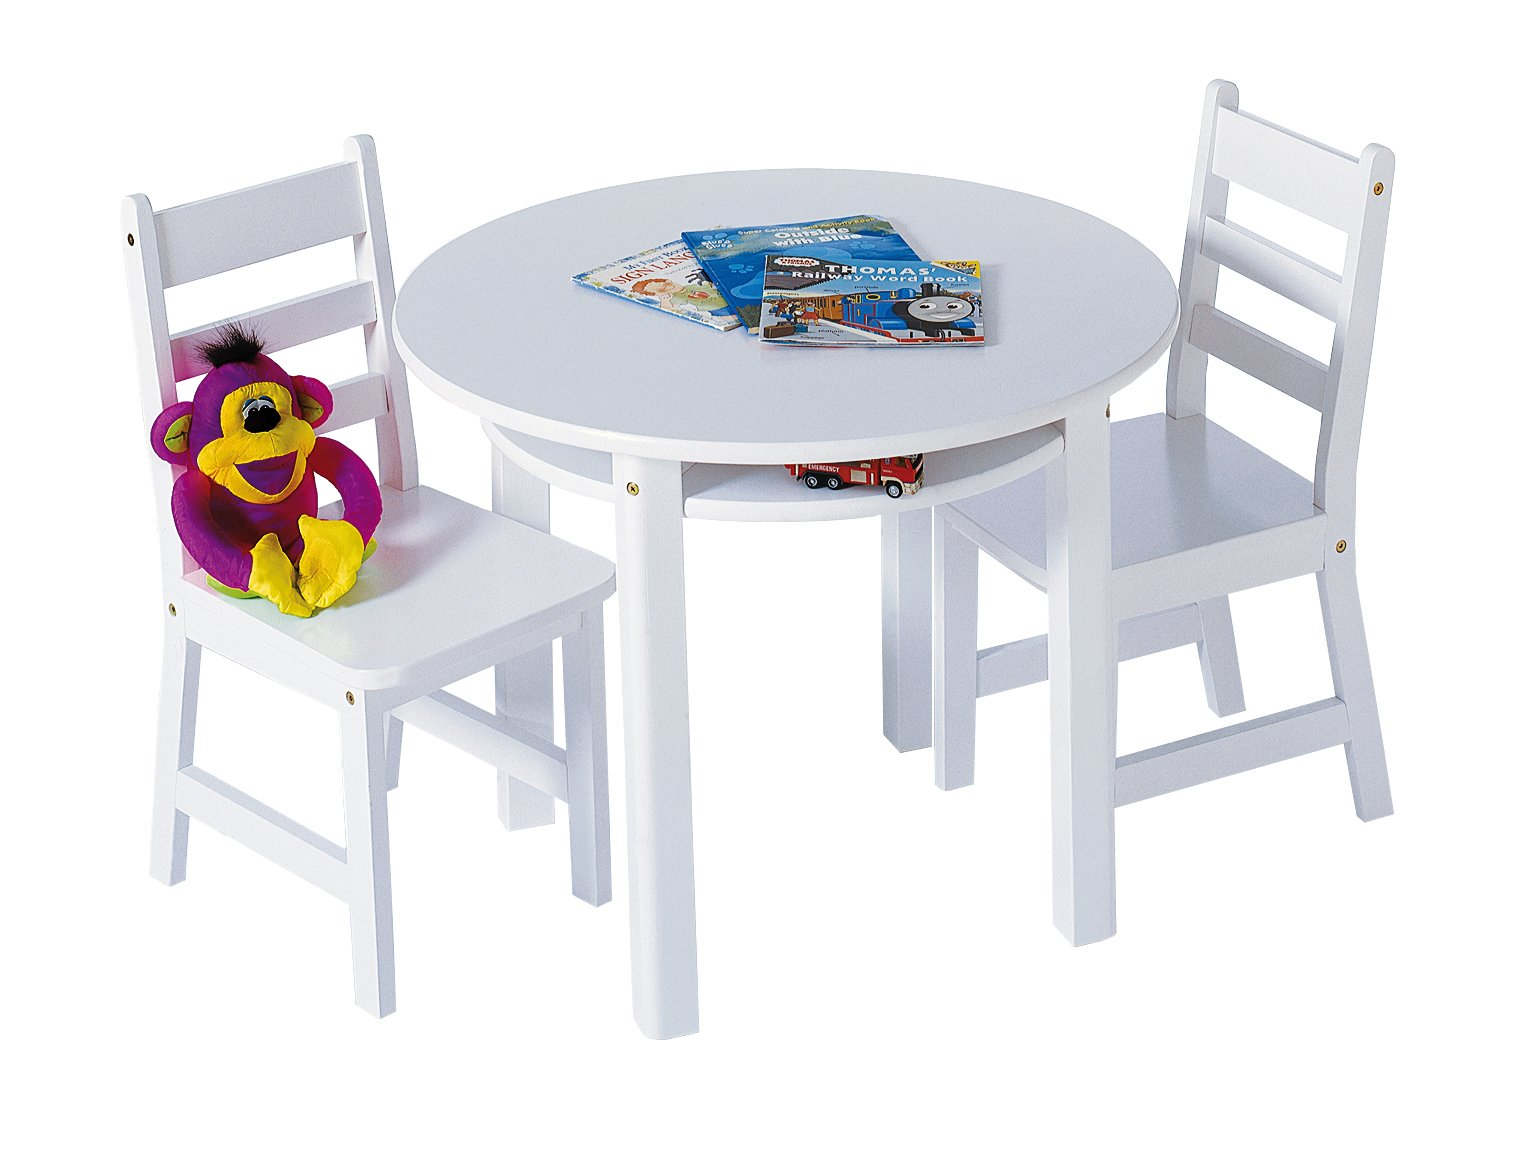 Lipper International Child's Round Table with Shelf and 2 Chairs, White by Lipper International